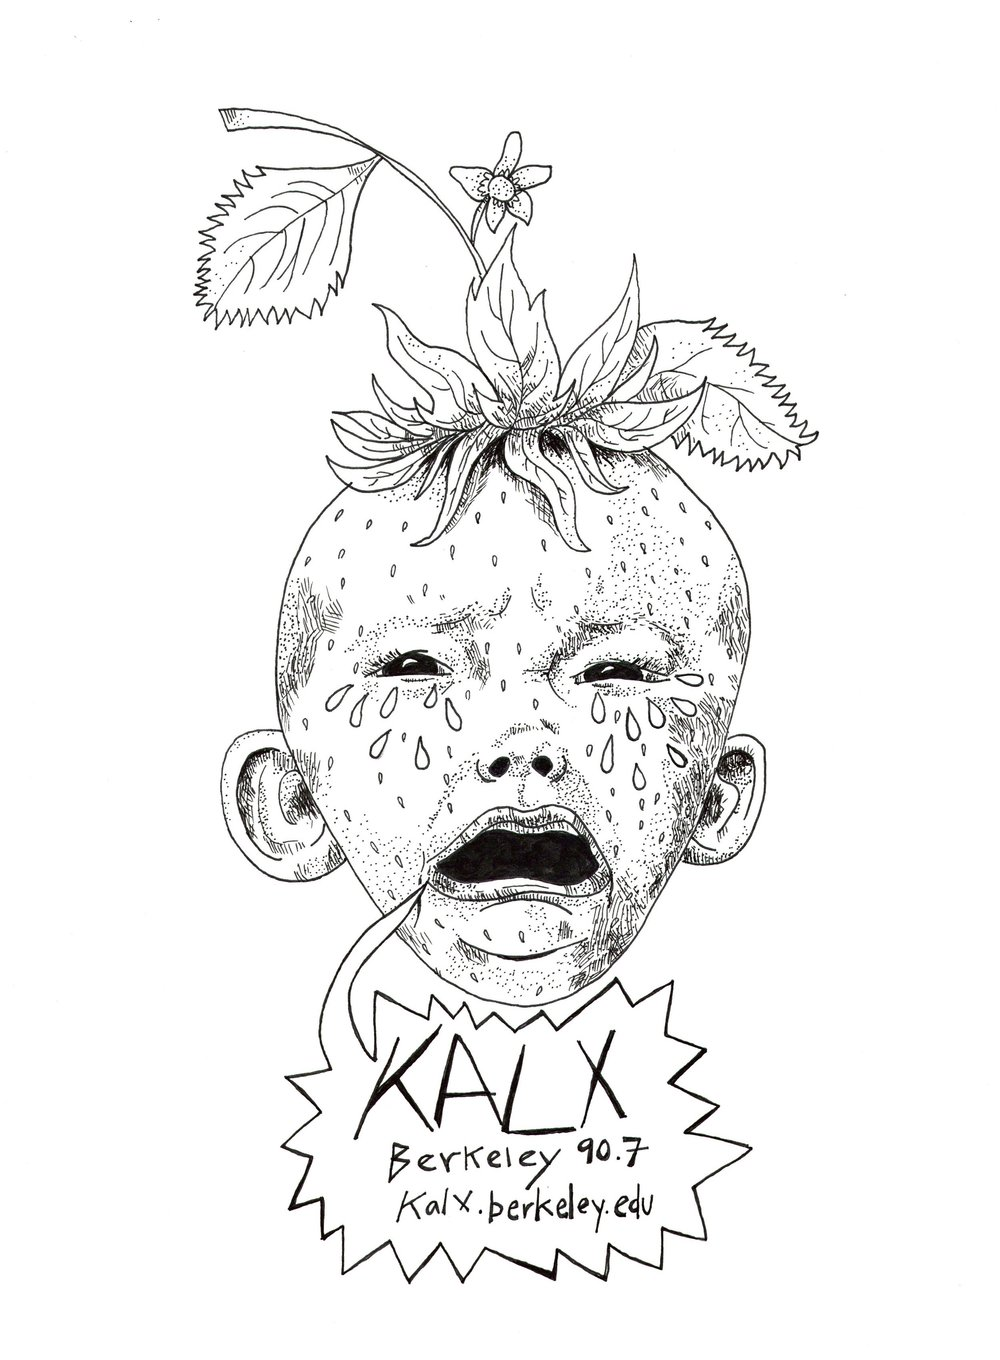 KALX Radio Station t-shirt design. 2016.